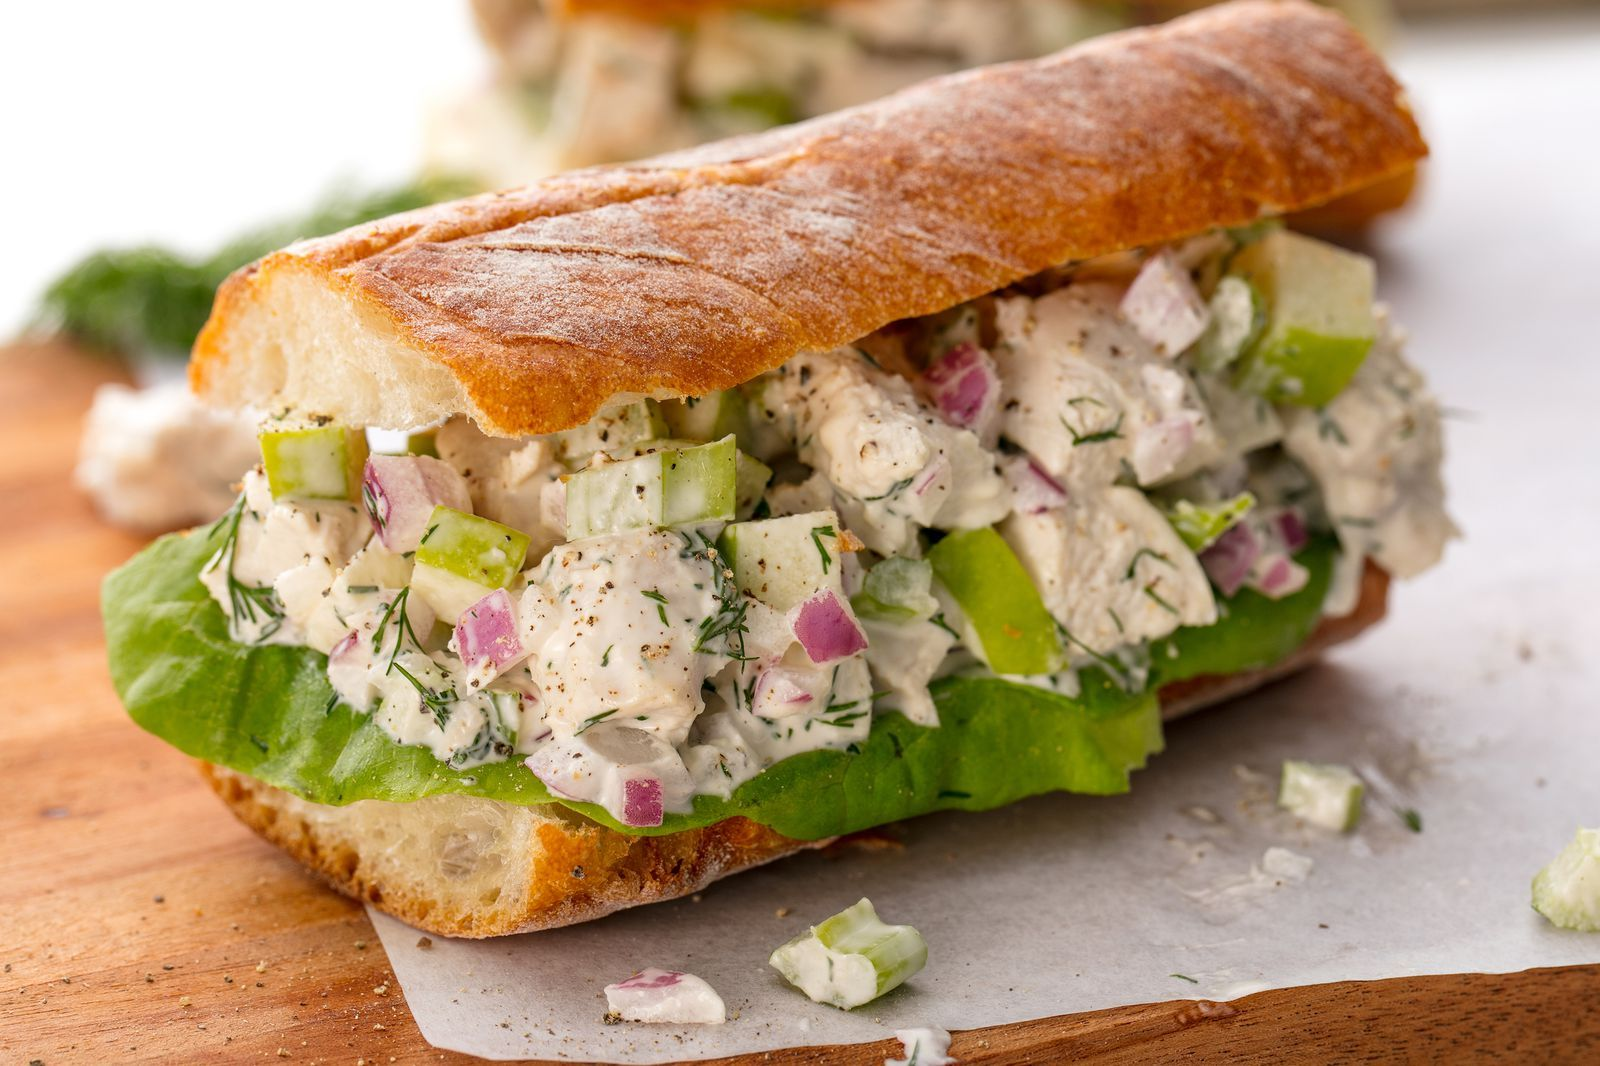 You Can T Beat This Classic Chicken Salad Sandwich Recipe Chicken Salad Sandwich Recipe Chicken Salad Recipes Chicken Salad Sandwich